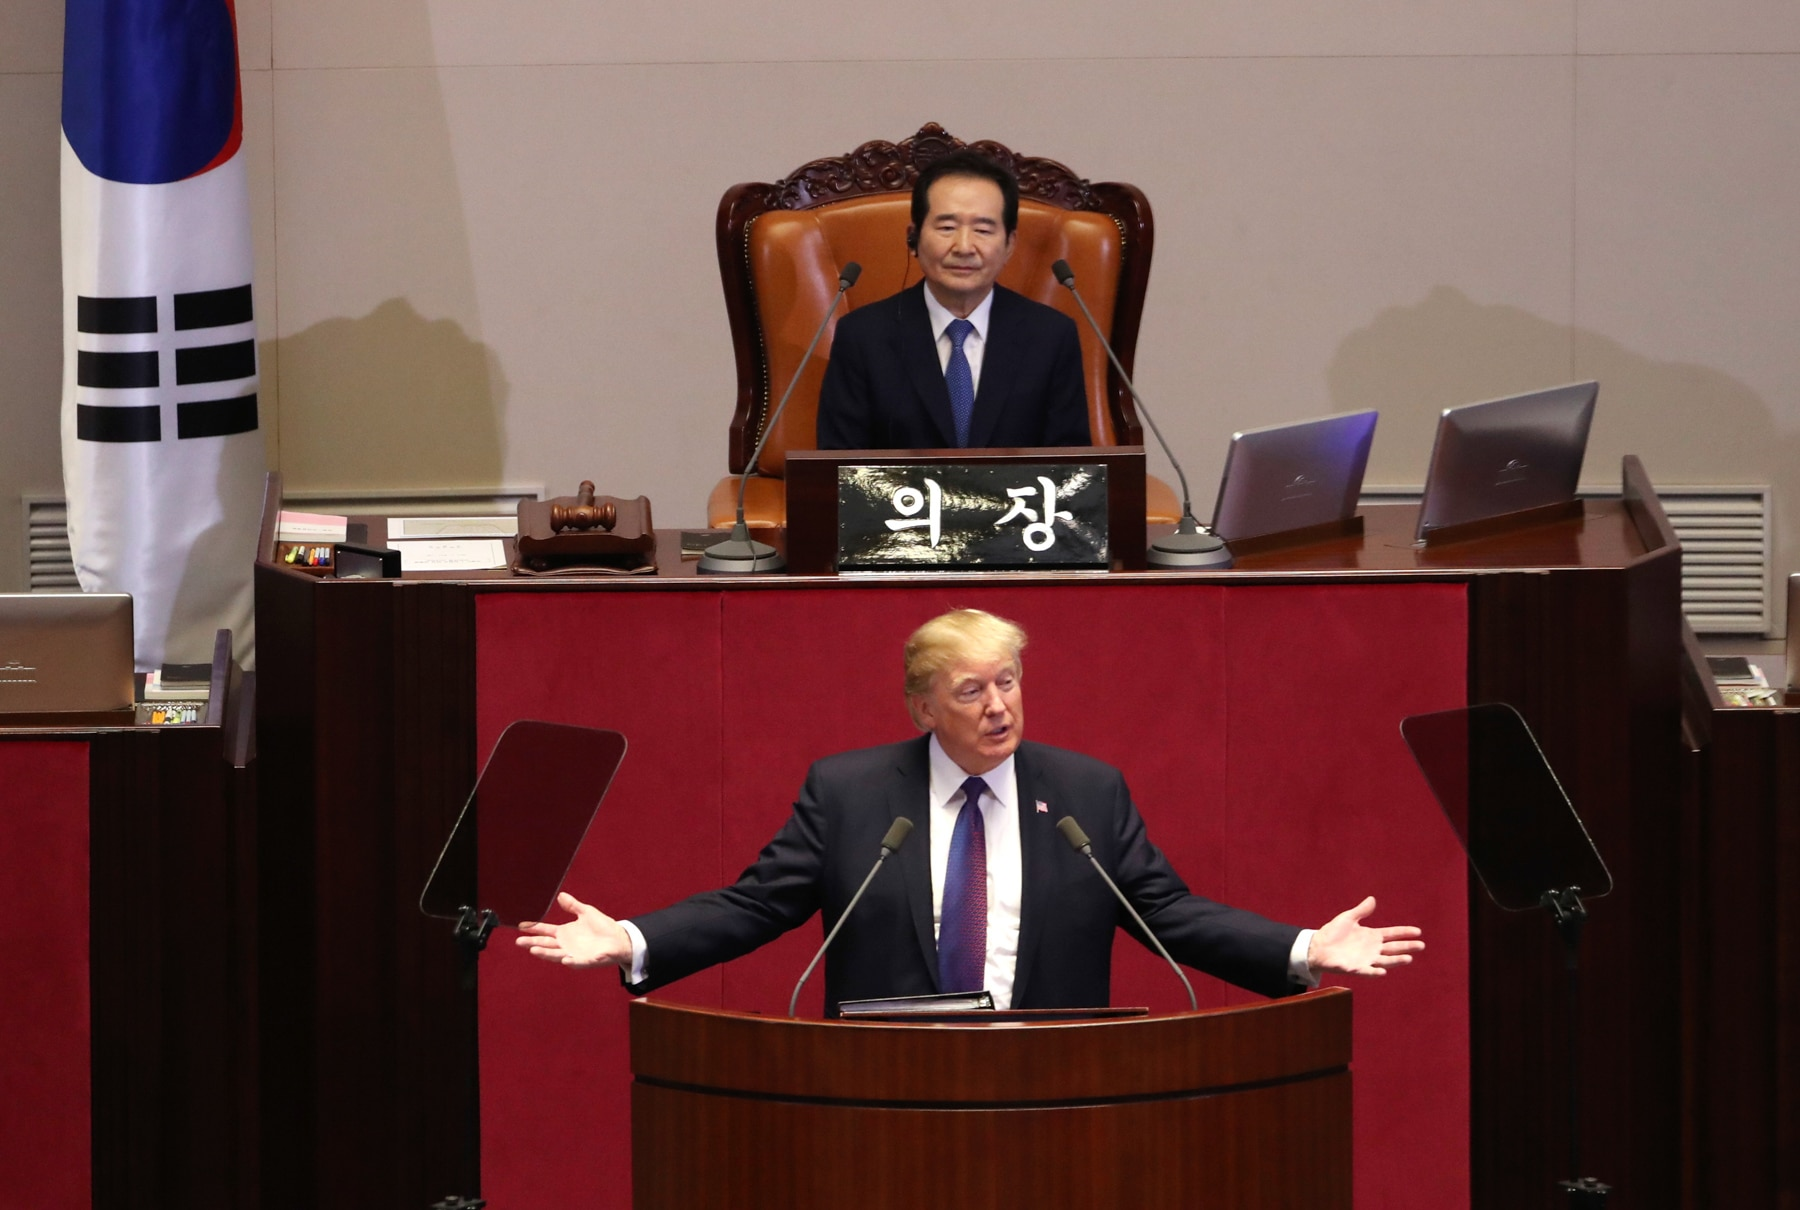 President Trump speaking at lectern with person seated above and behind him (© AP Images)